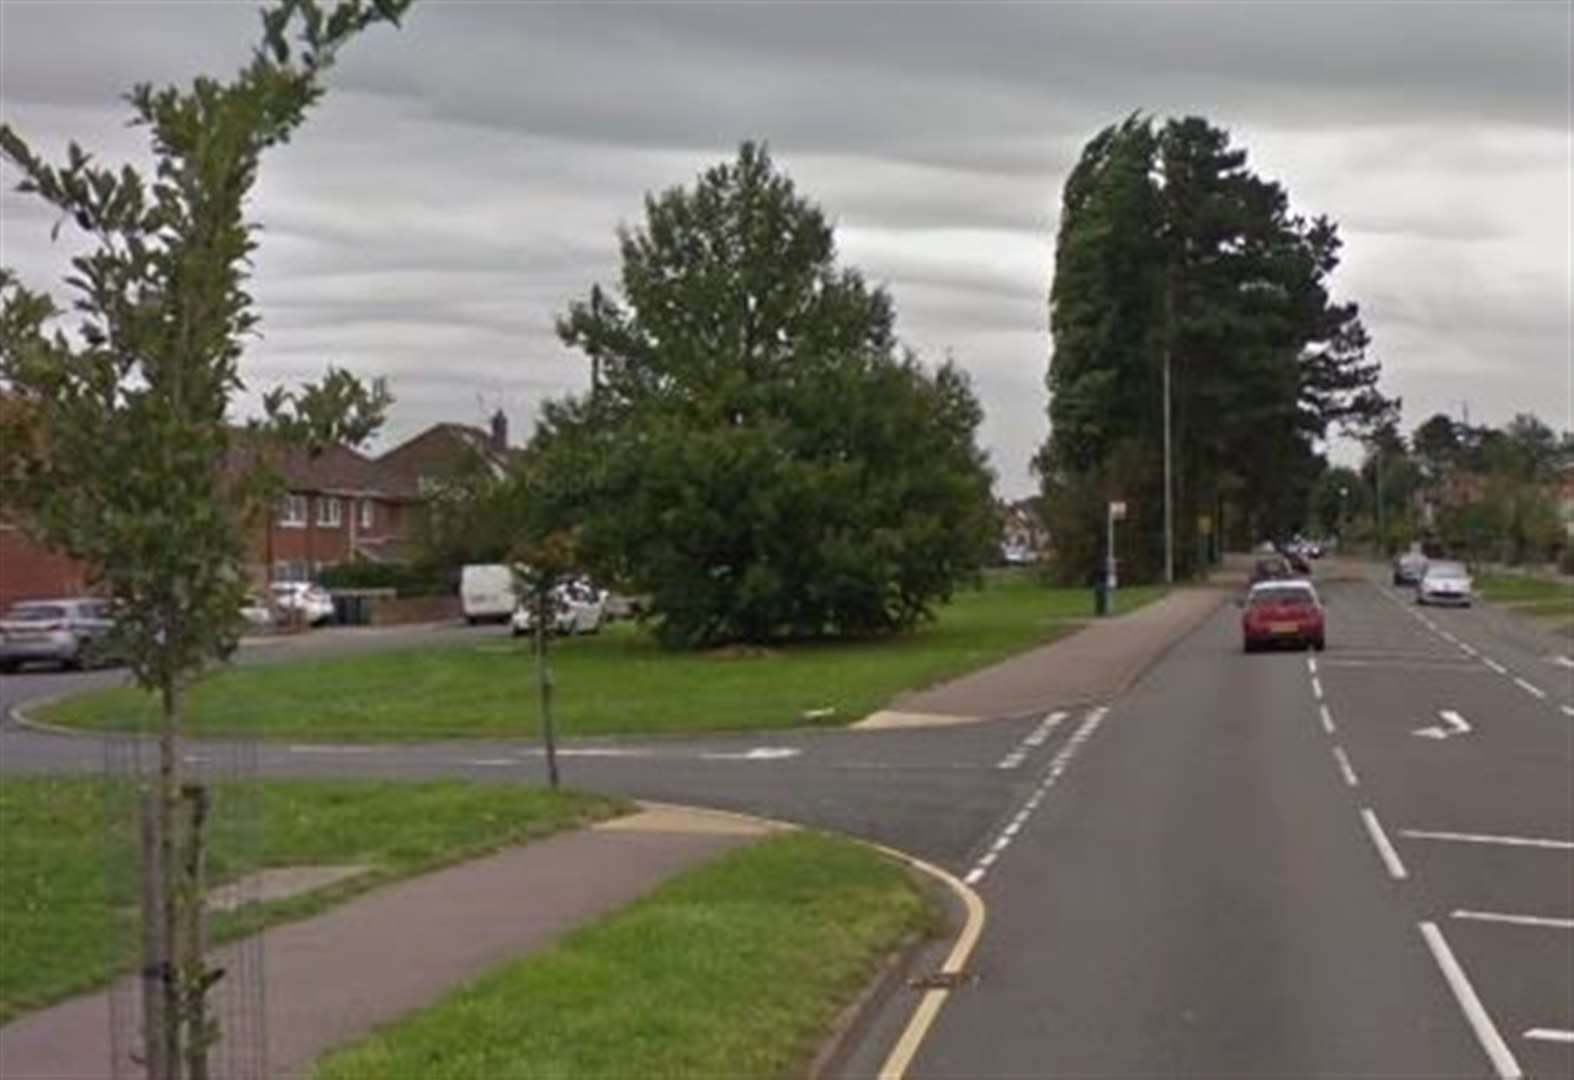 Biker in serious condition after crash with car